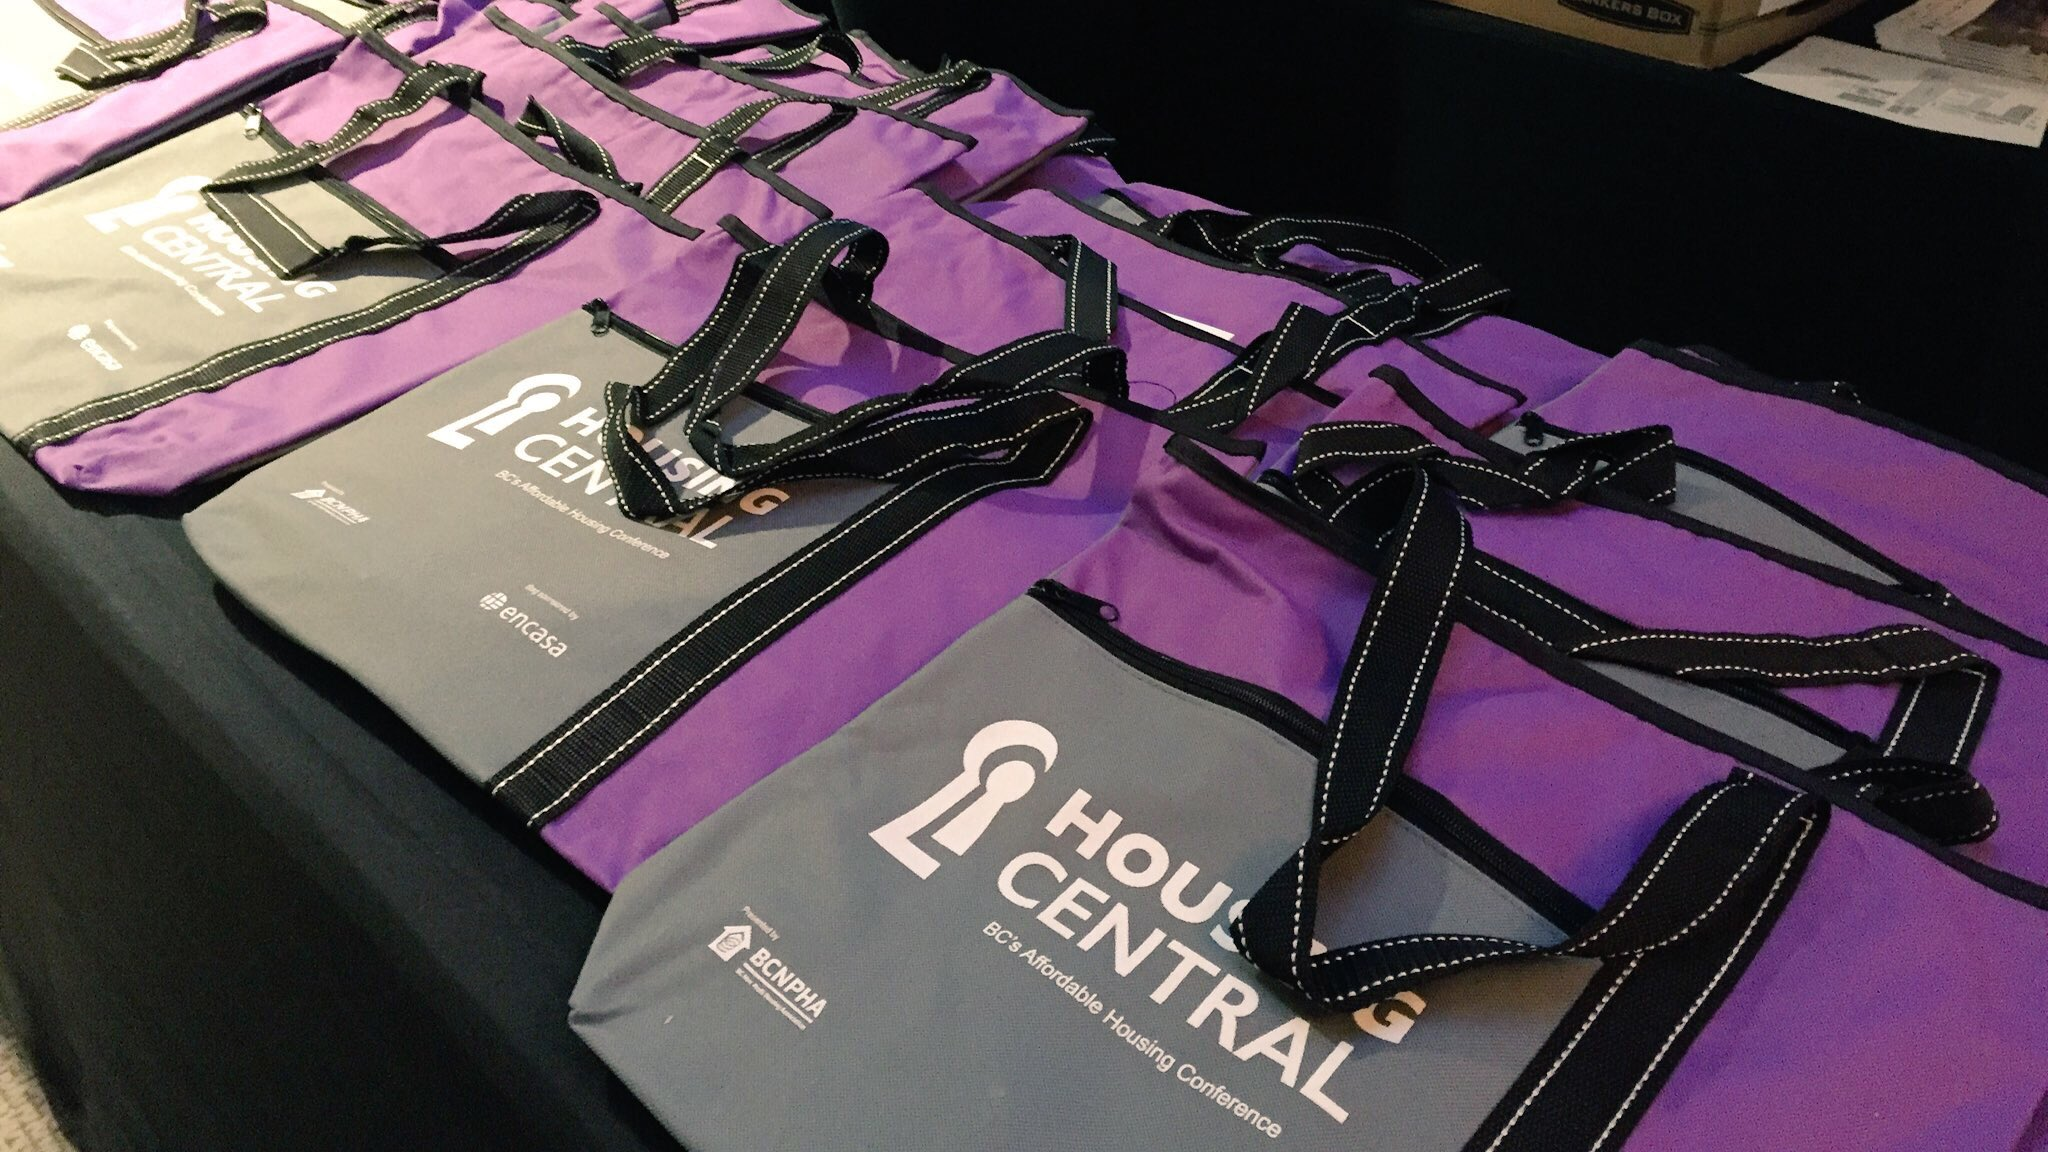 Have you gotten your delegate bags yet? You could be the winner of a @StarbucksCanada giftcard! ☕️ #HousingCentral https://t.co/OKsG8yrNBj